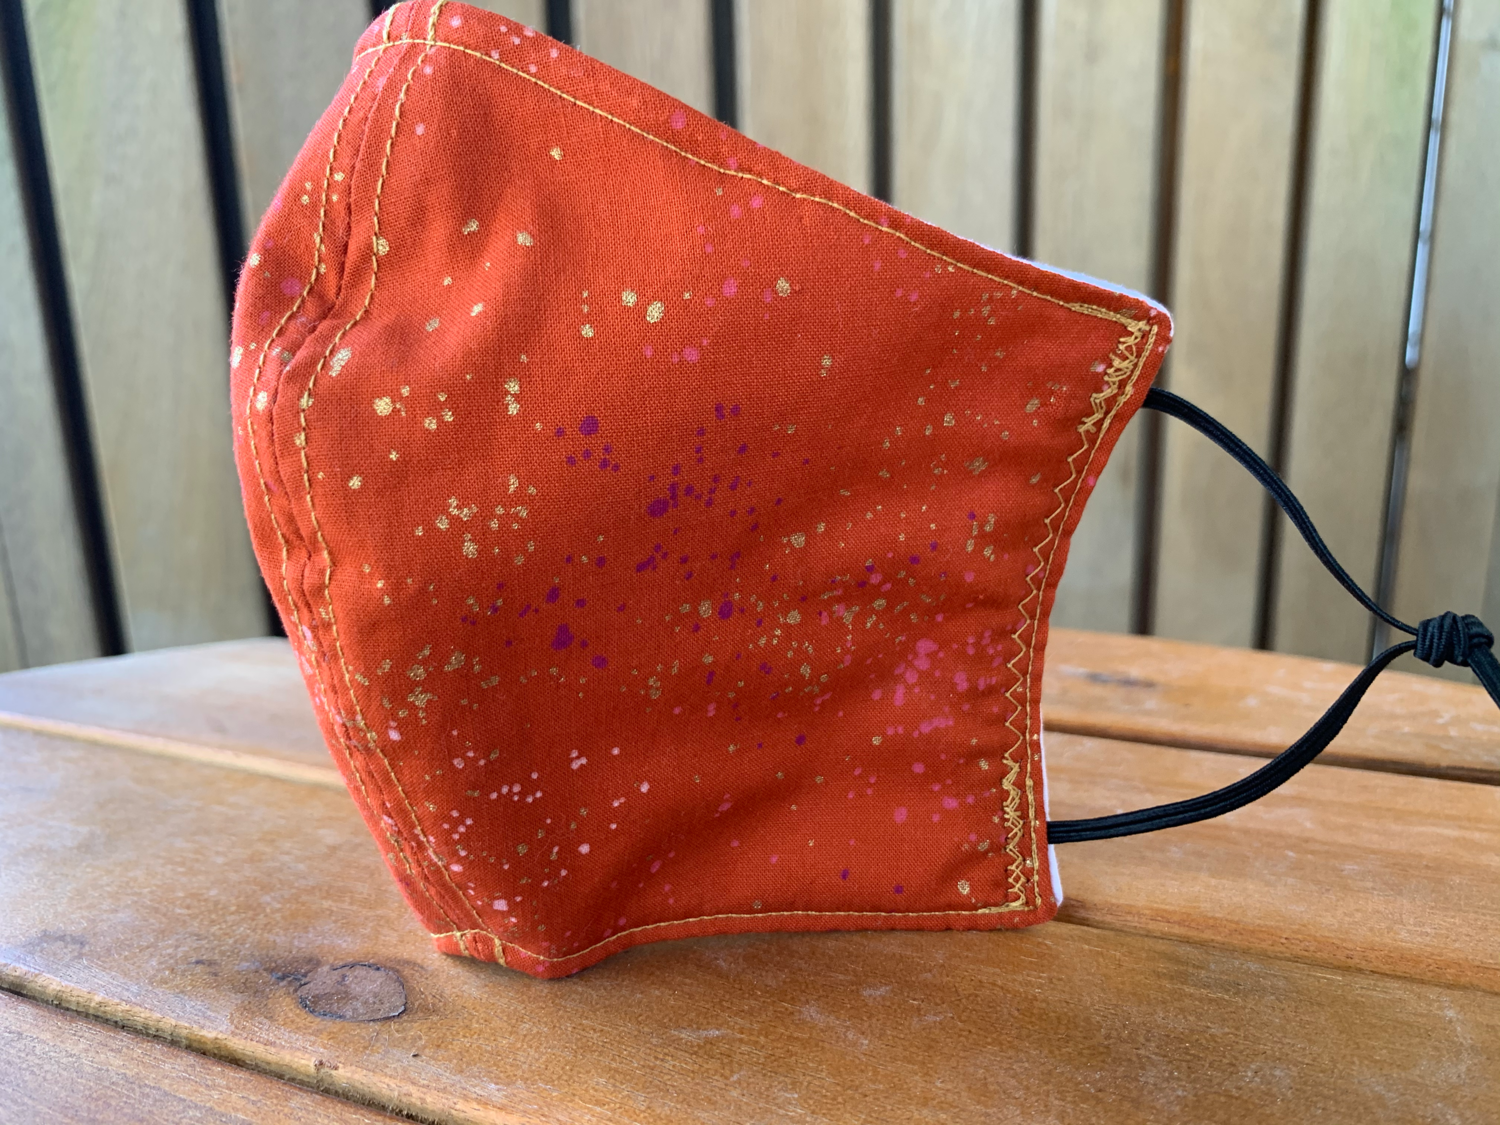 VLA DANCE Mask in Speckled